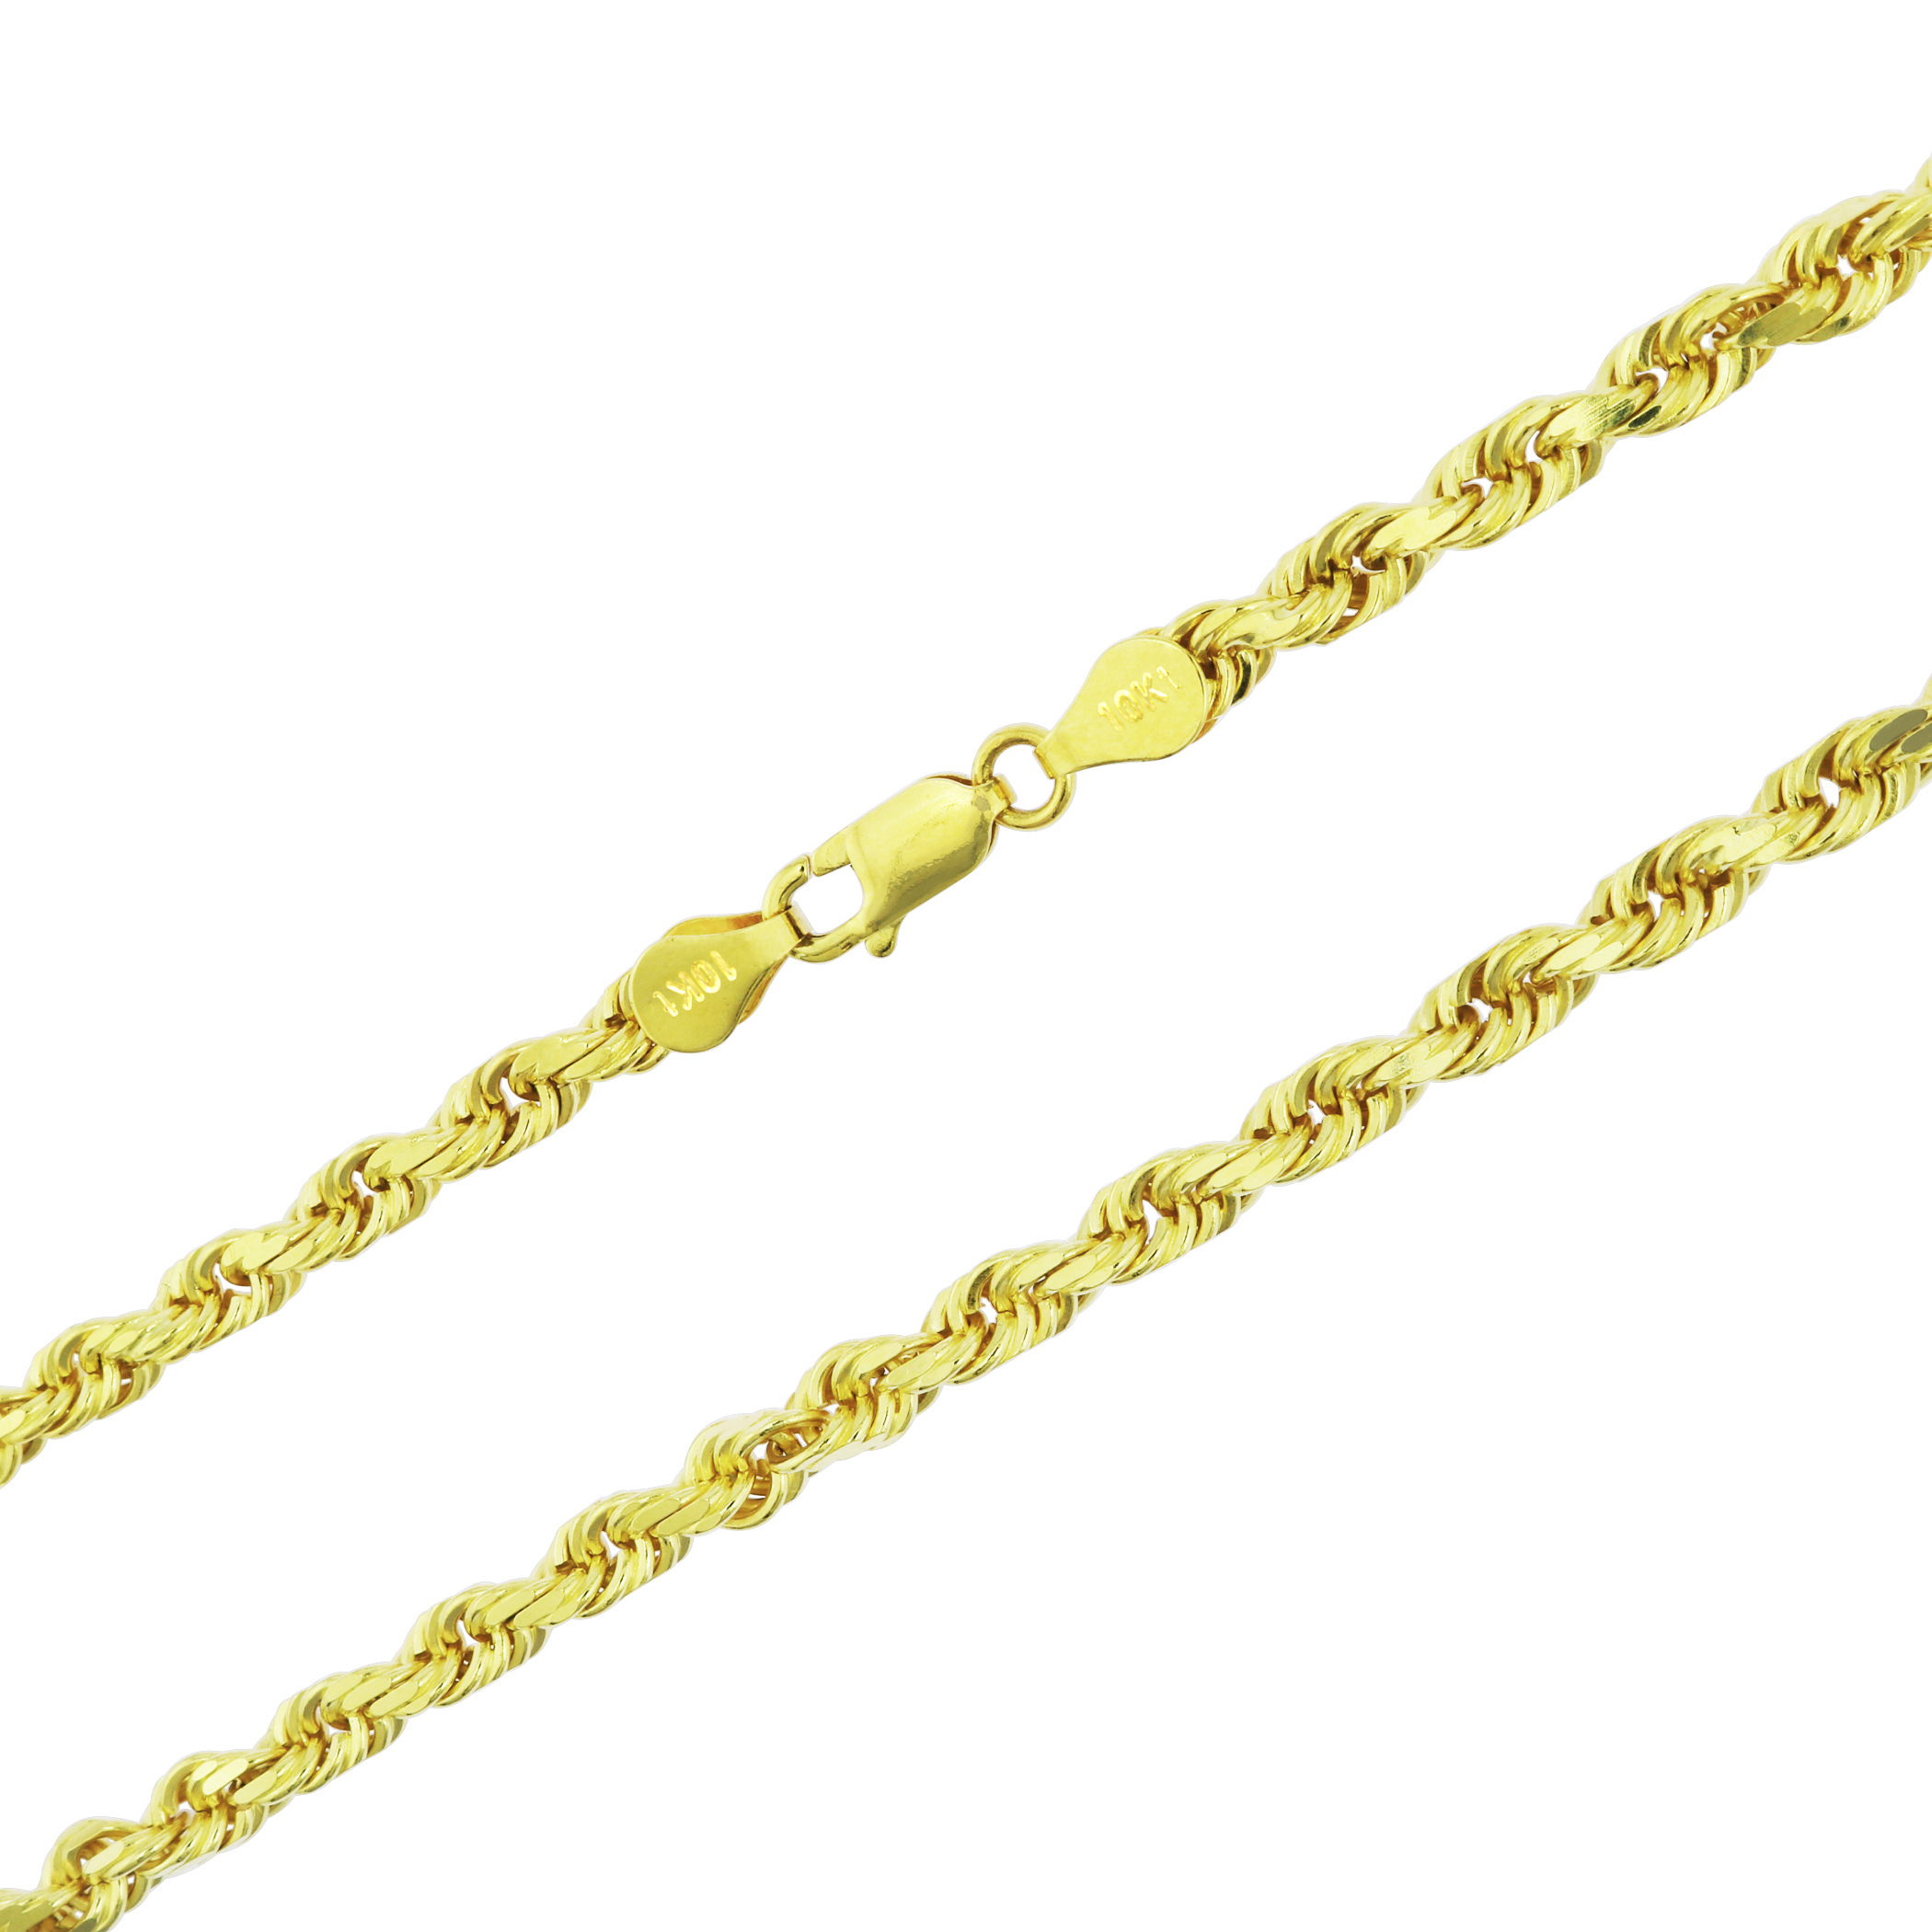 10K-Real-Yellow-Gold-Mens-Wide-5mm-Diamond-Cut-Rope-Chain-Bracelet-8-034-8-5-034-9-034 thumbnail 36